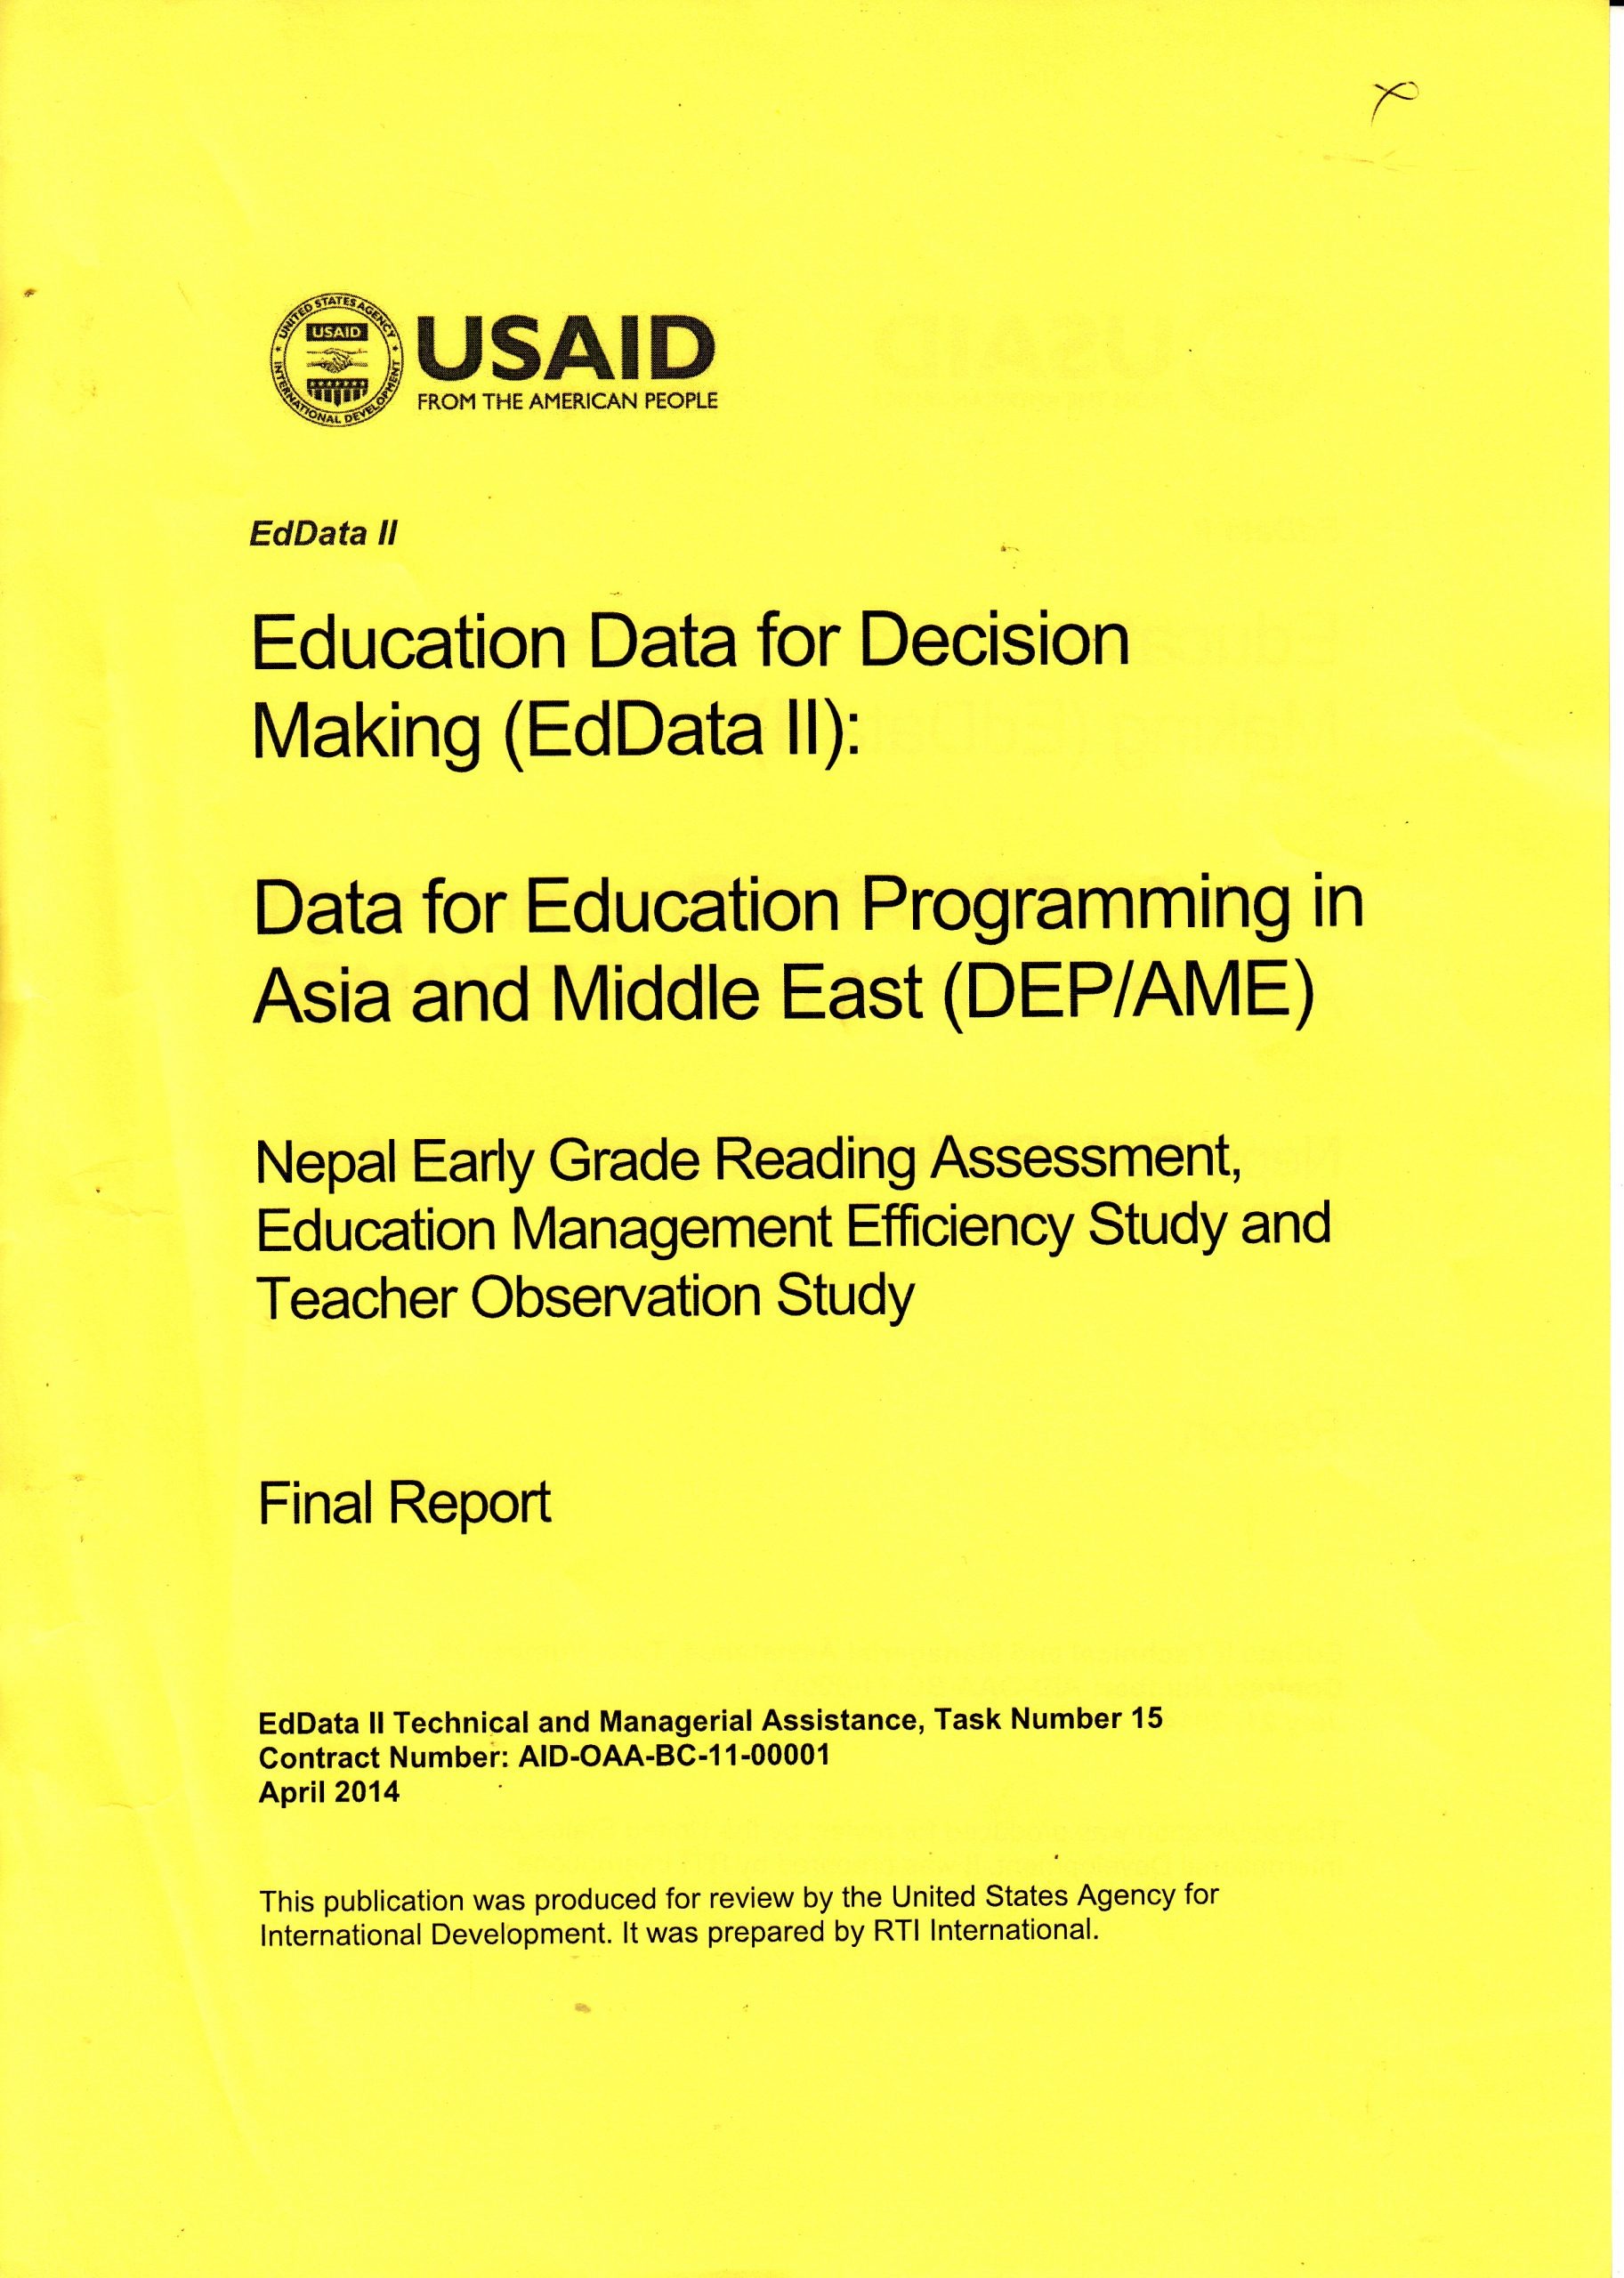 Ed Data (II), Early Grade Reading Assessment (EGRA), the Education Management Efficiency Study (EMES) and the Teacher Observation Study